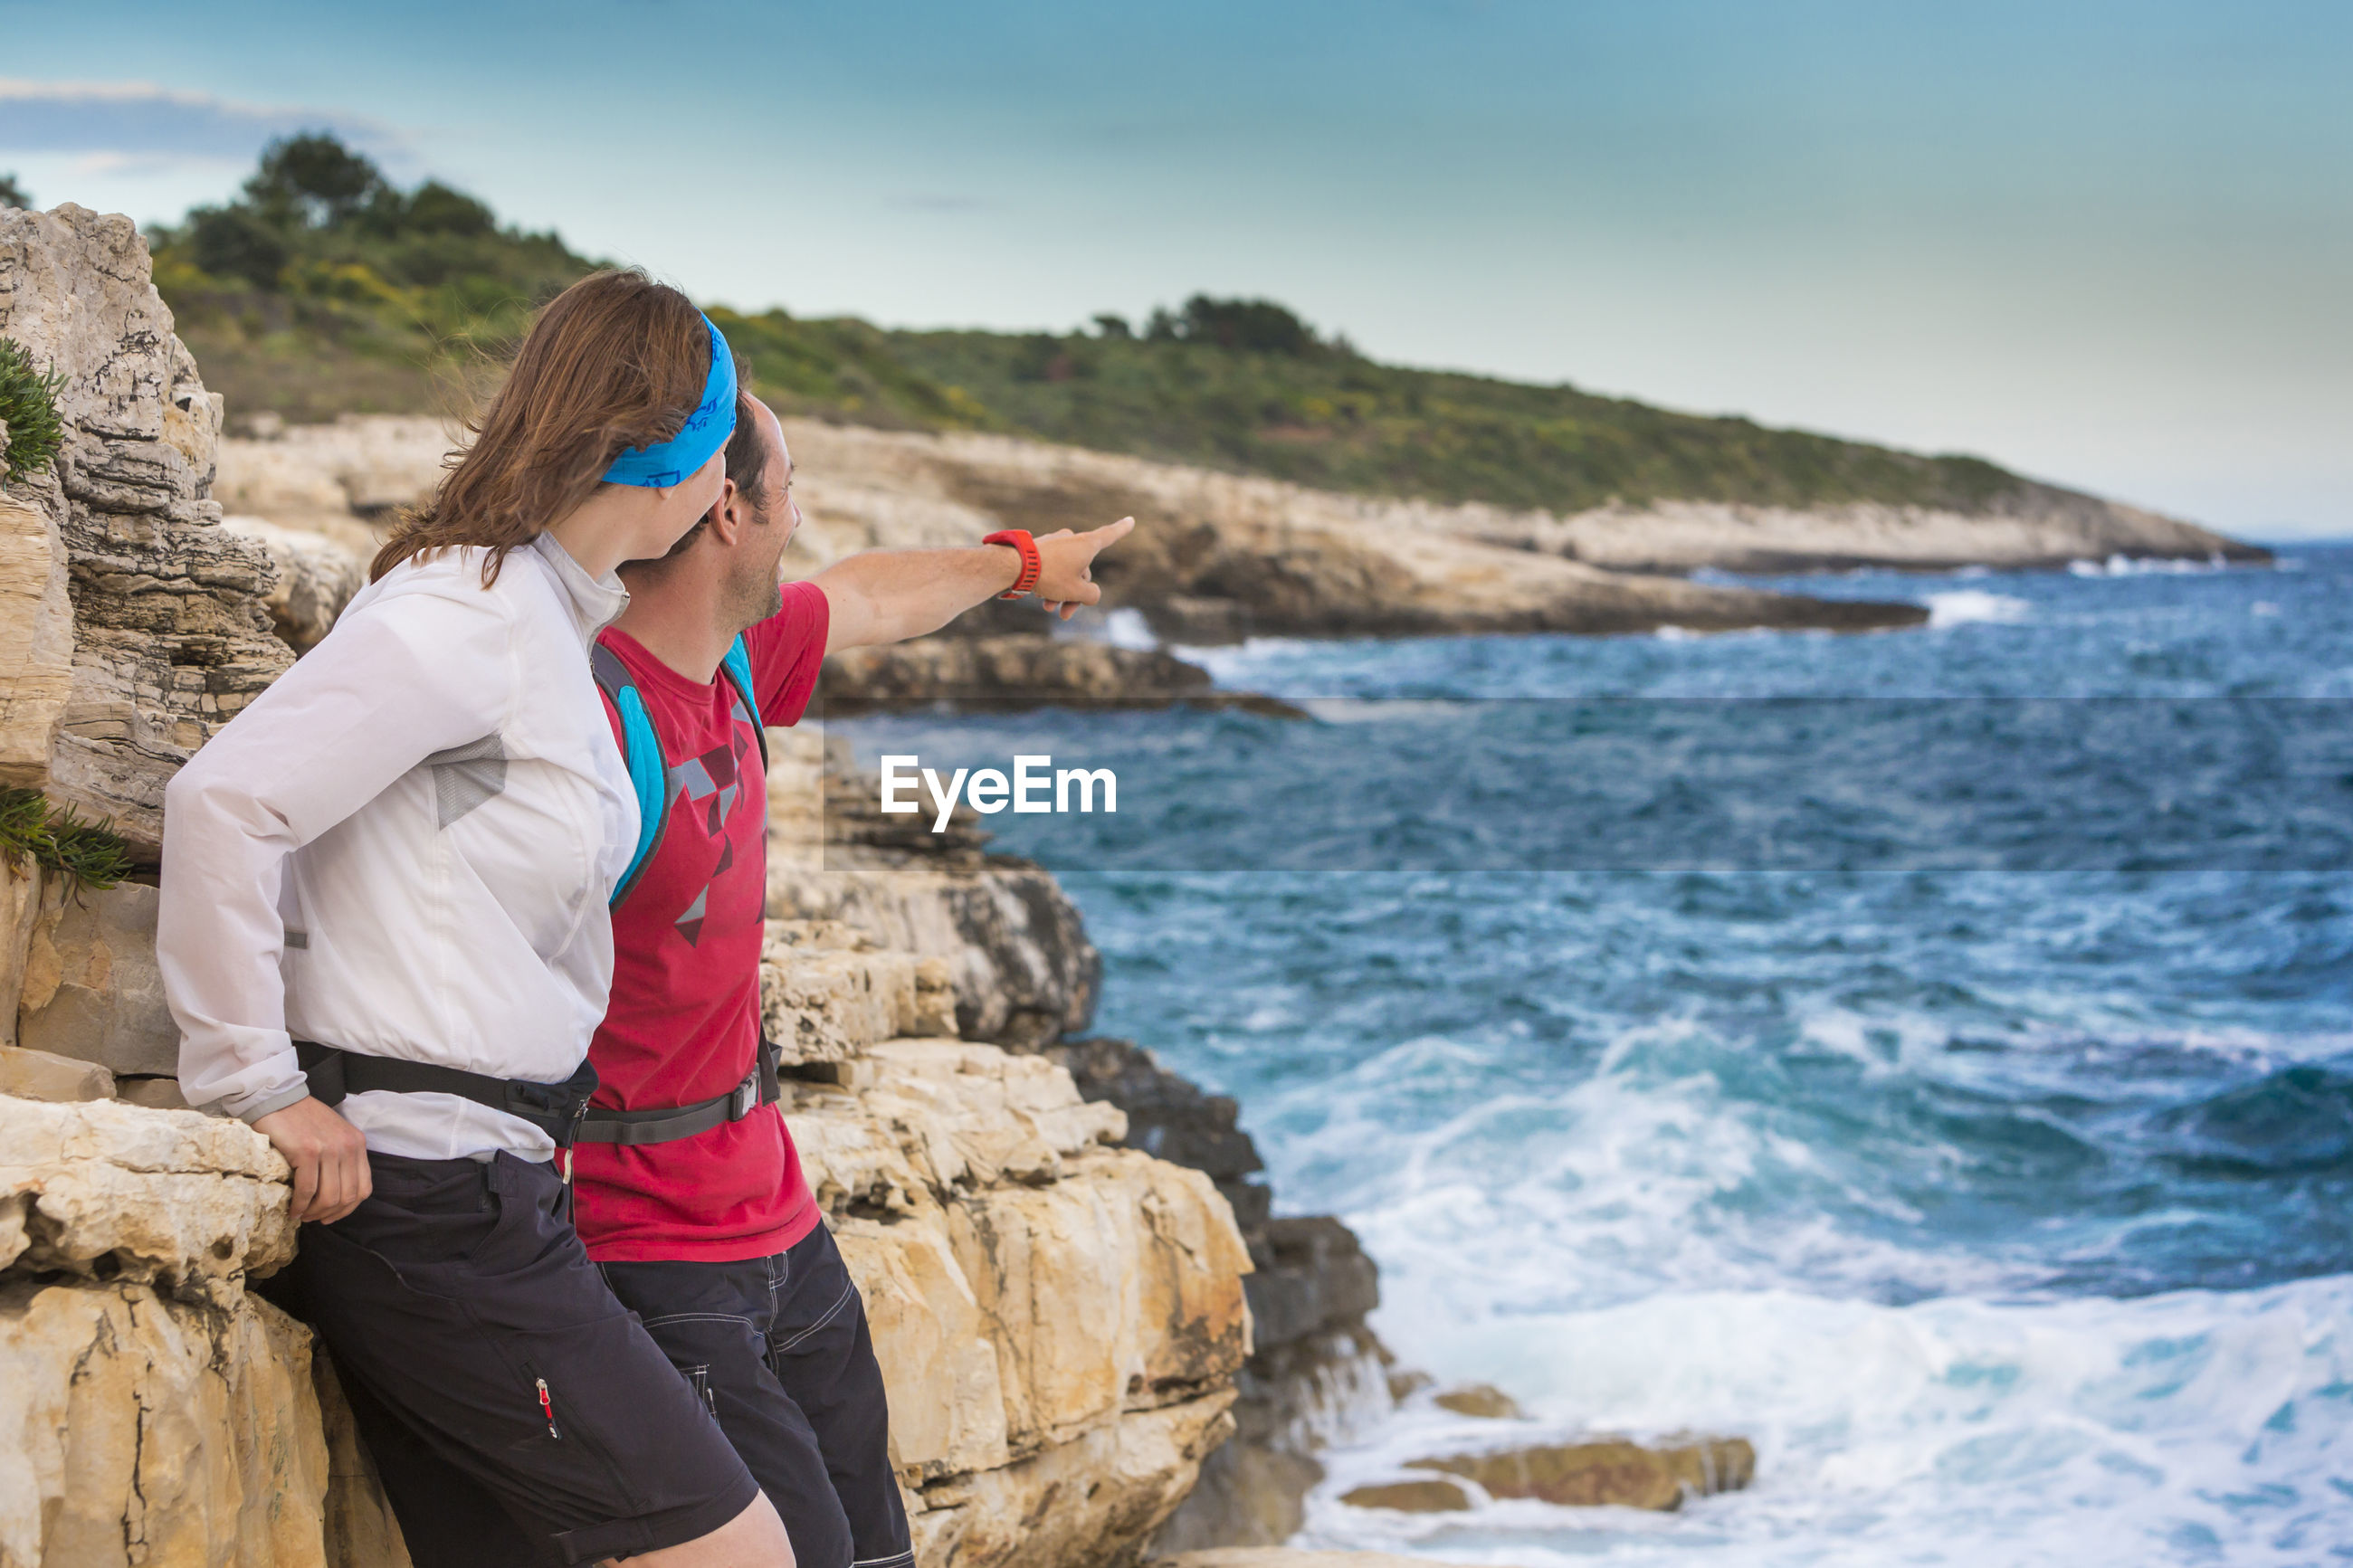 Man pointing by woman standing on rocky shore